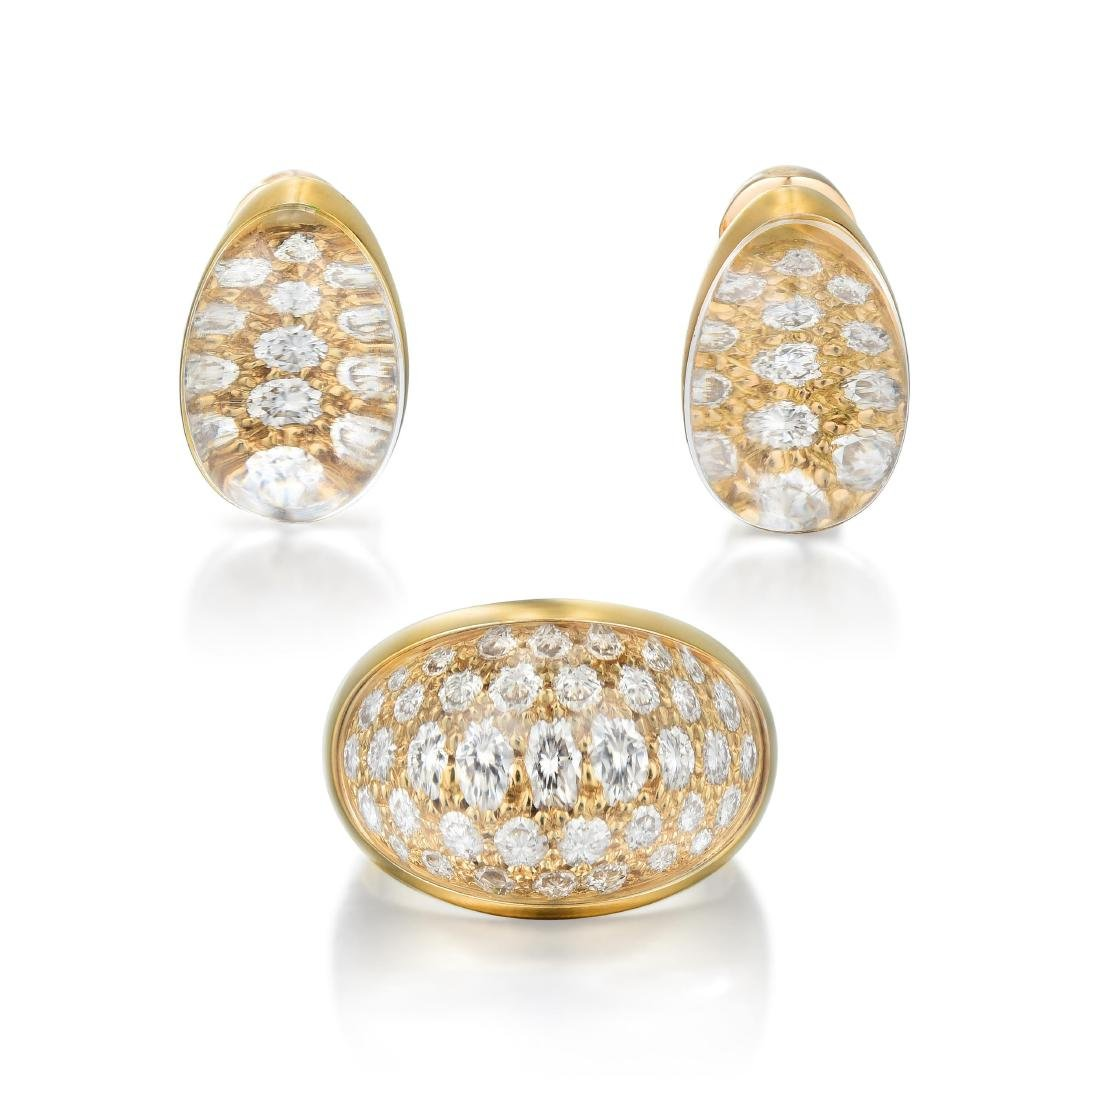 Cartier Rock Crystal and Diamond Earring and Ring Set,